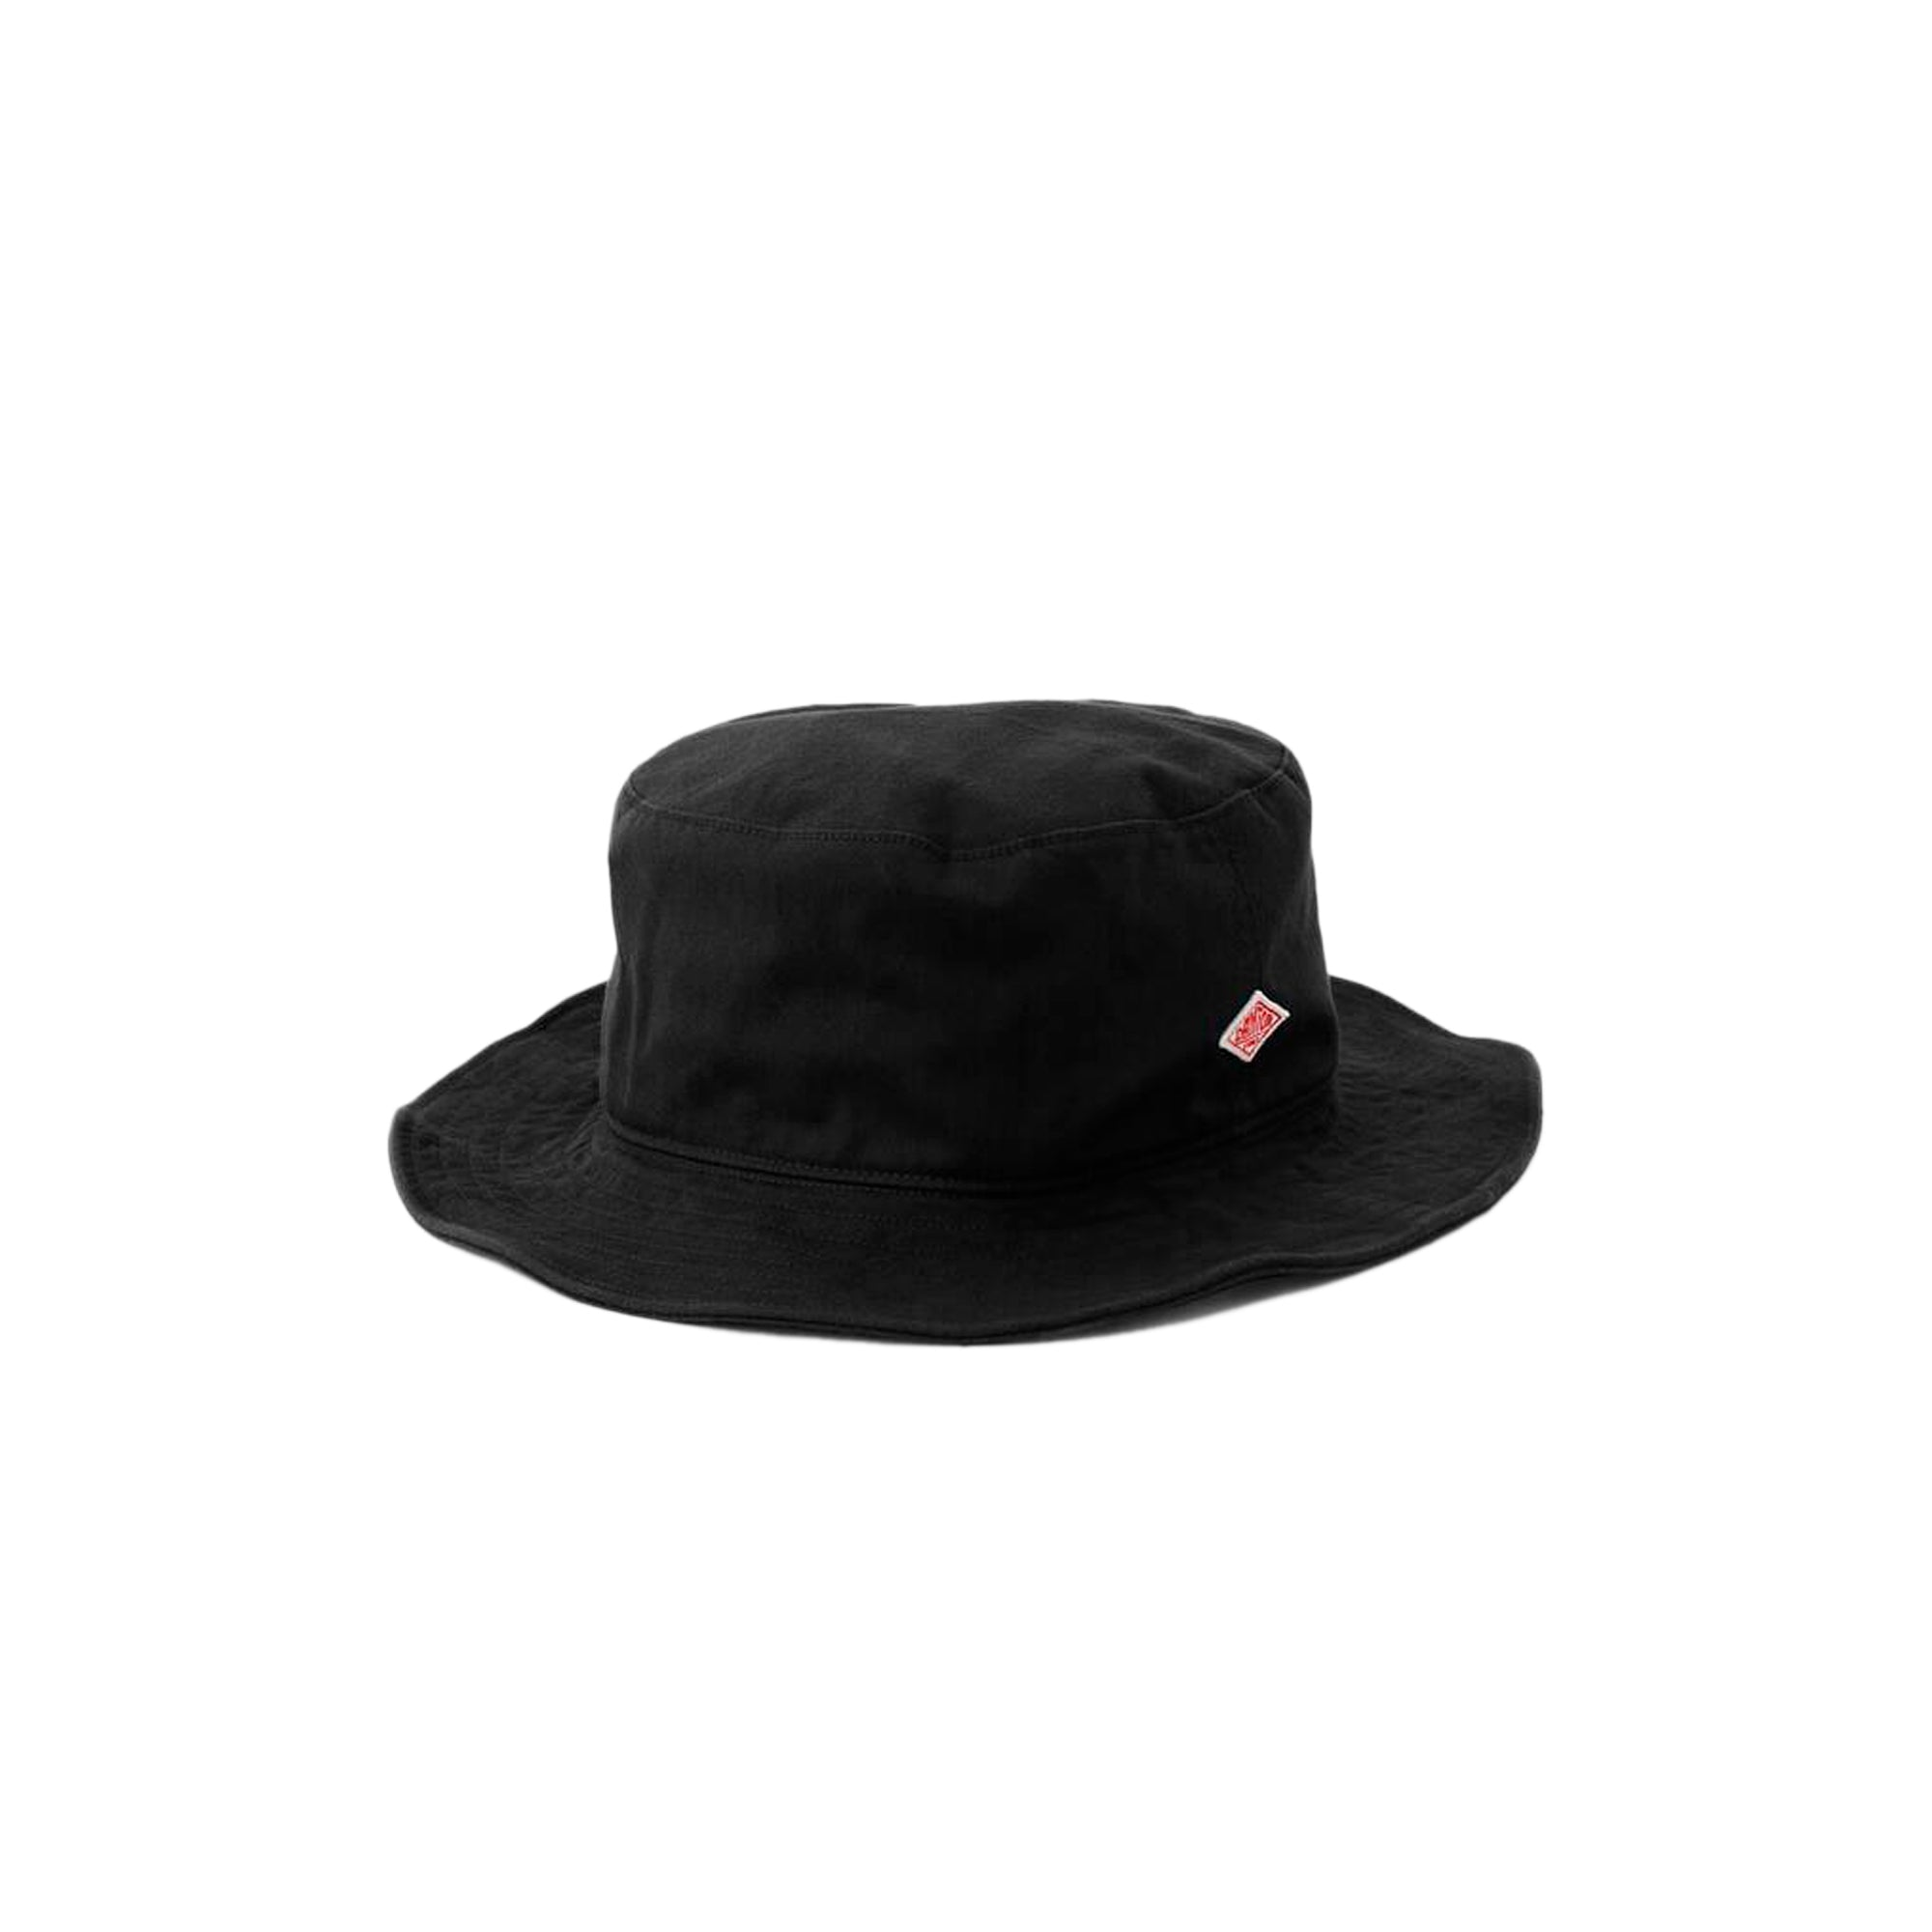 Danton Canvas Hat: Black - The Union Project